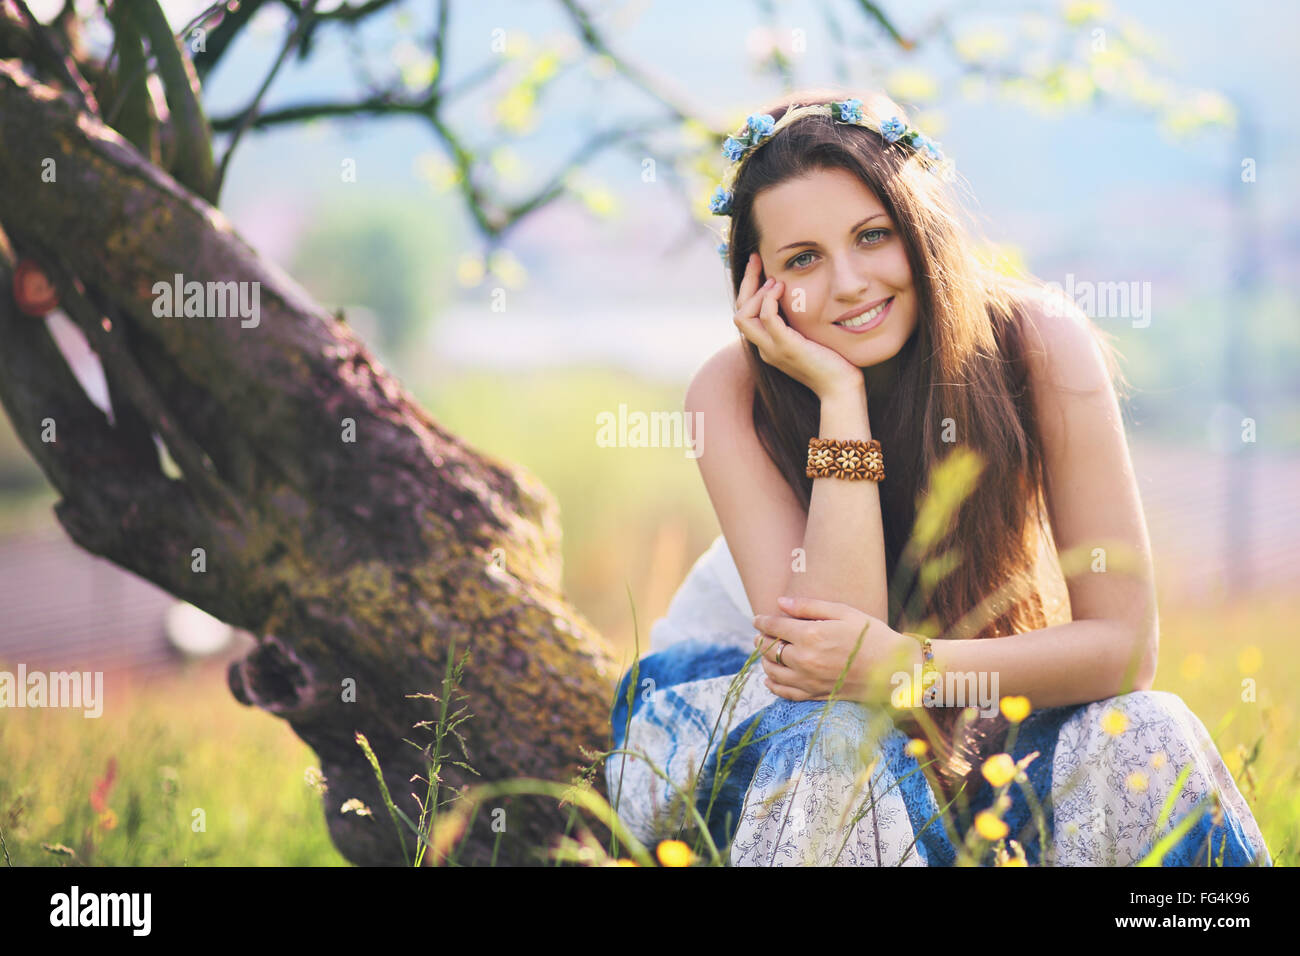 Smiling and joyful woman in spring meadow. Nature and harmony - Stock Image